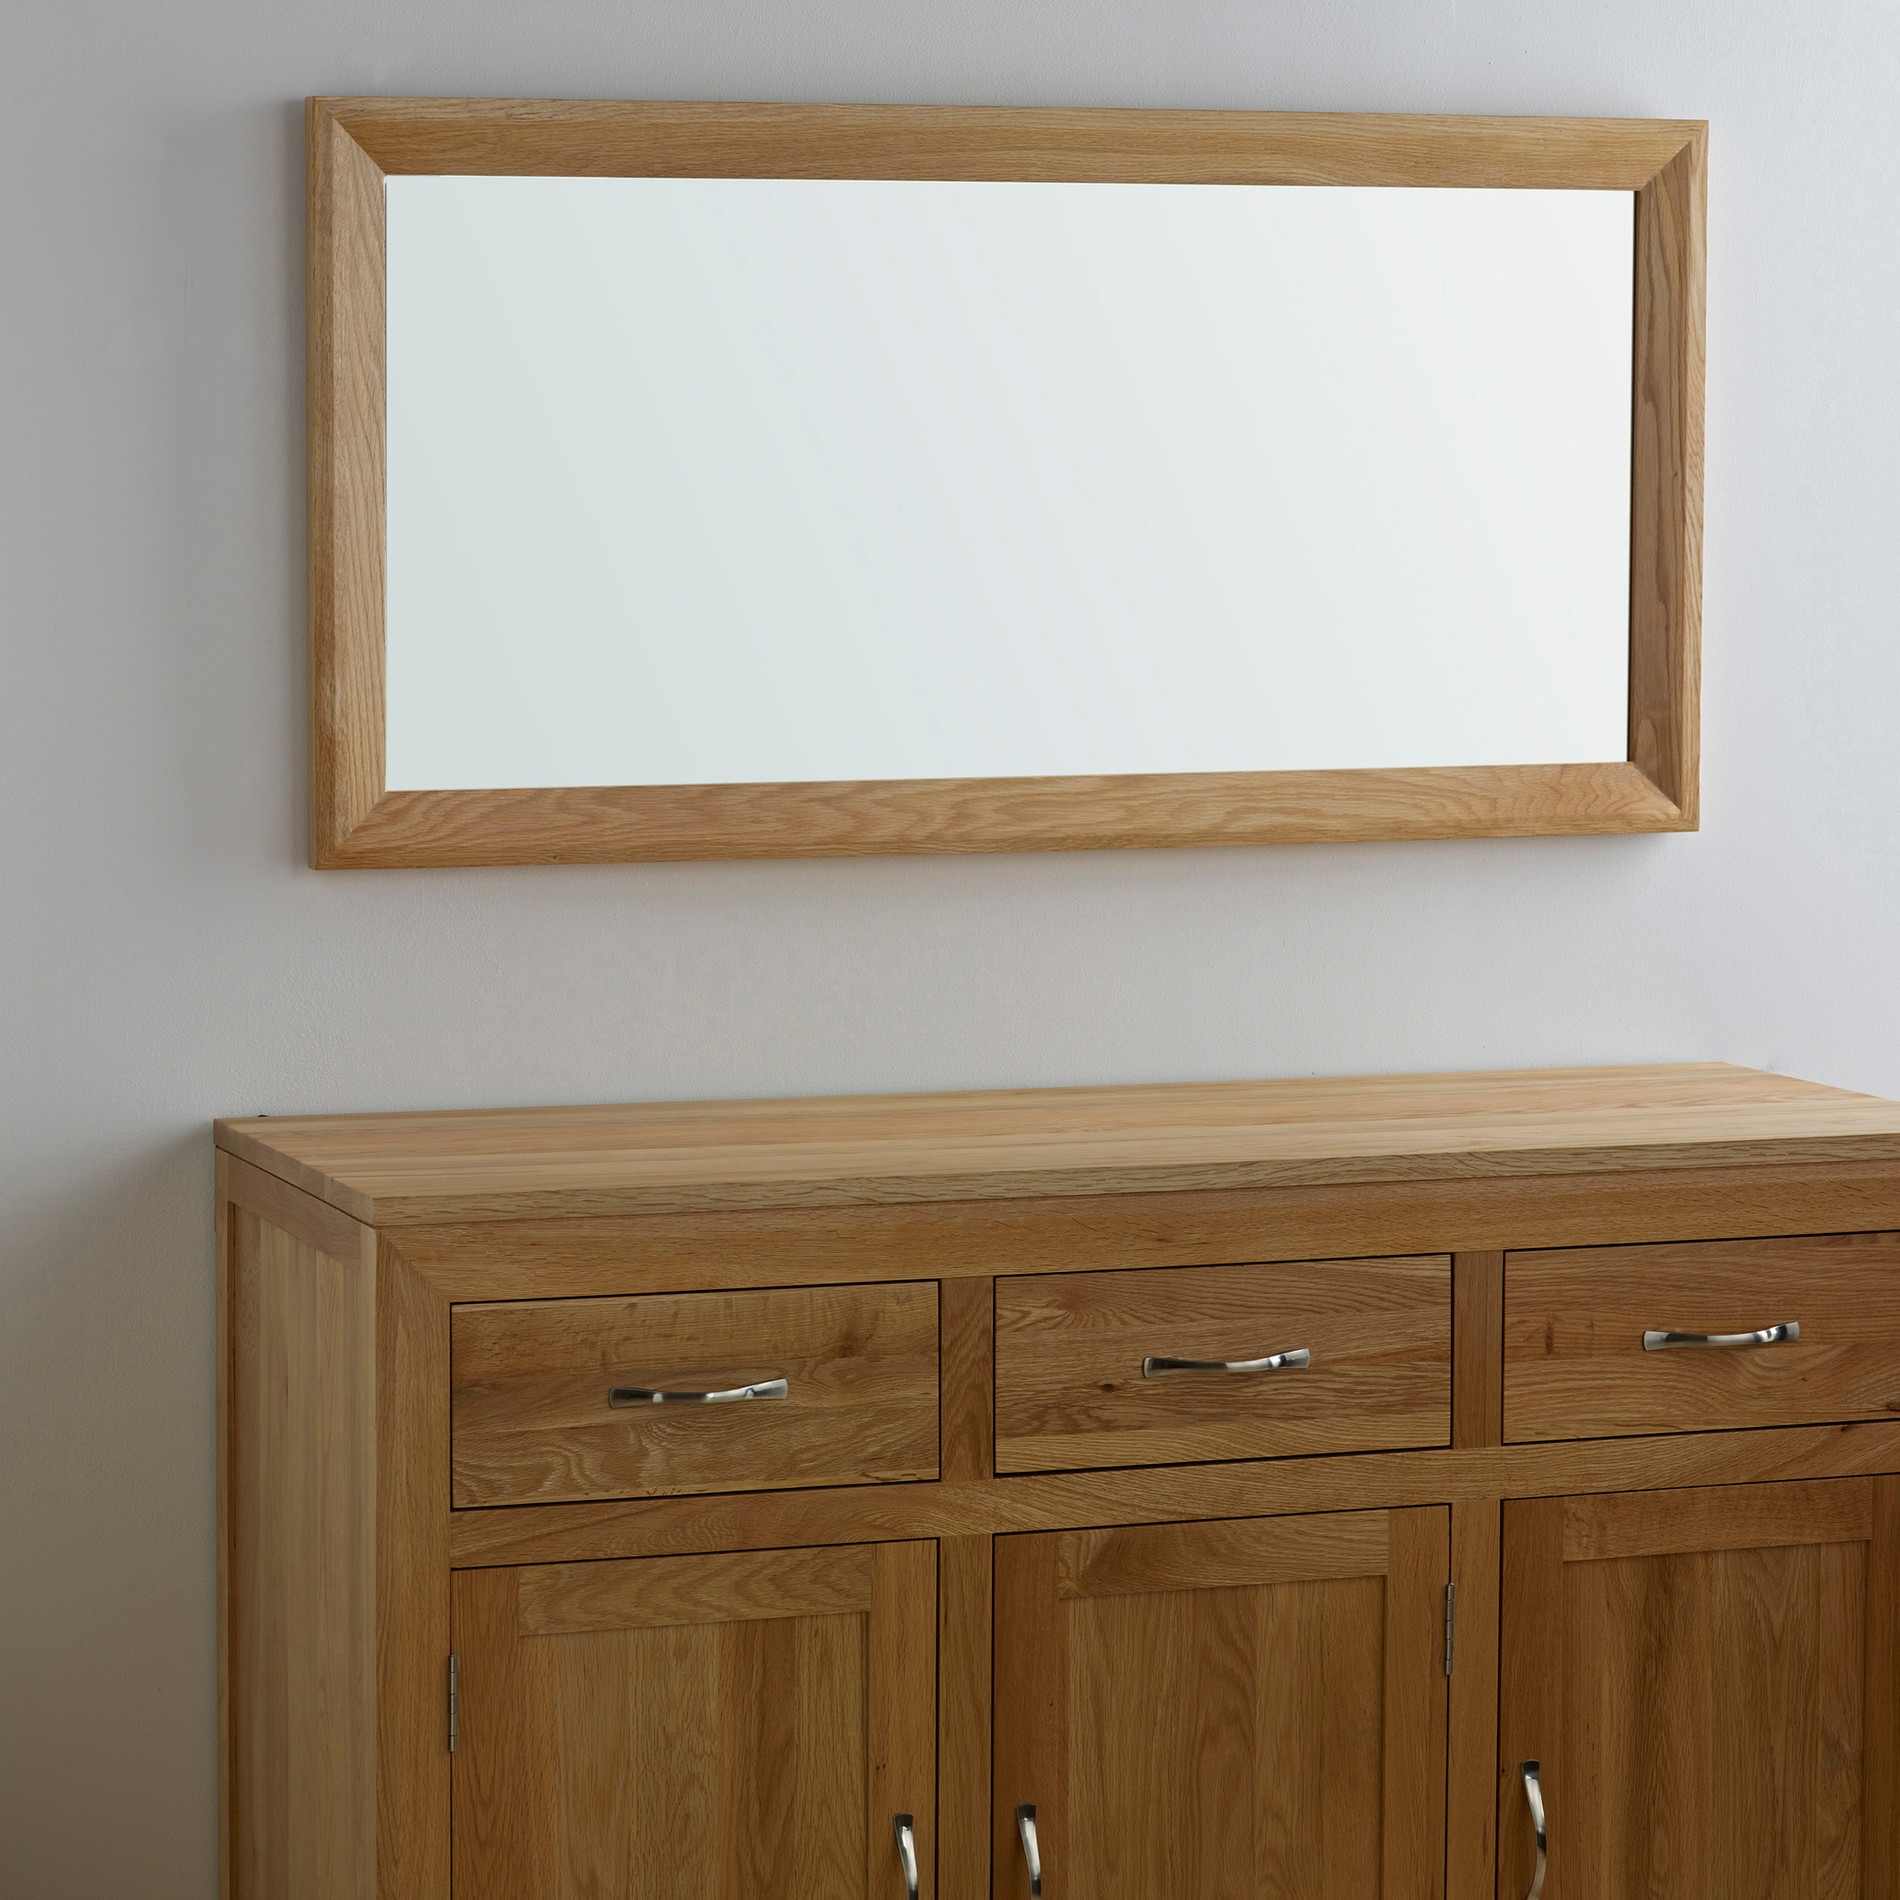 Bevel Natural Solid Oak Wall Mirror Oak Furniture Land Intended For Oak Mirror (View 5 of 15)